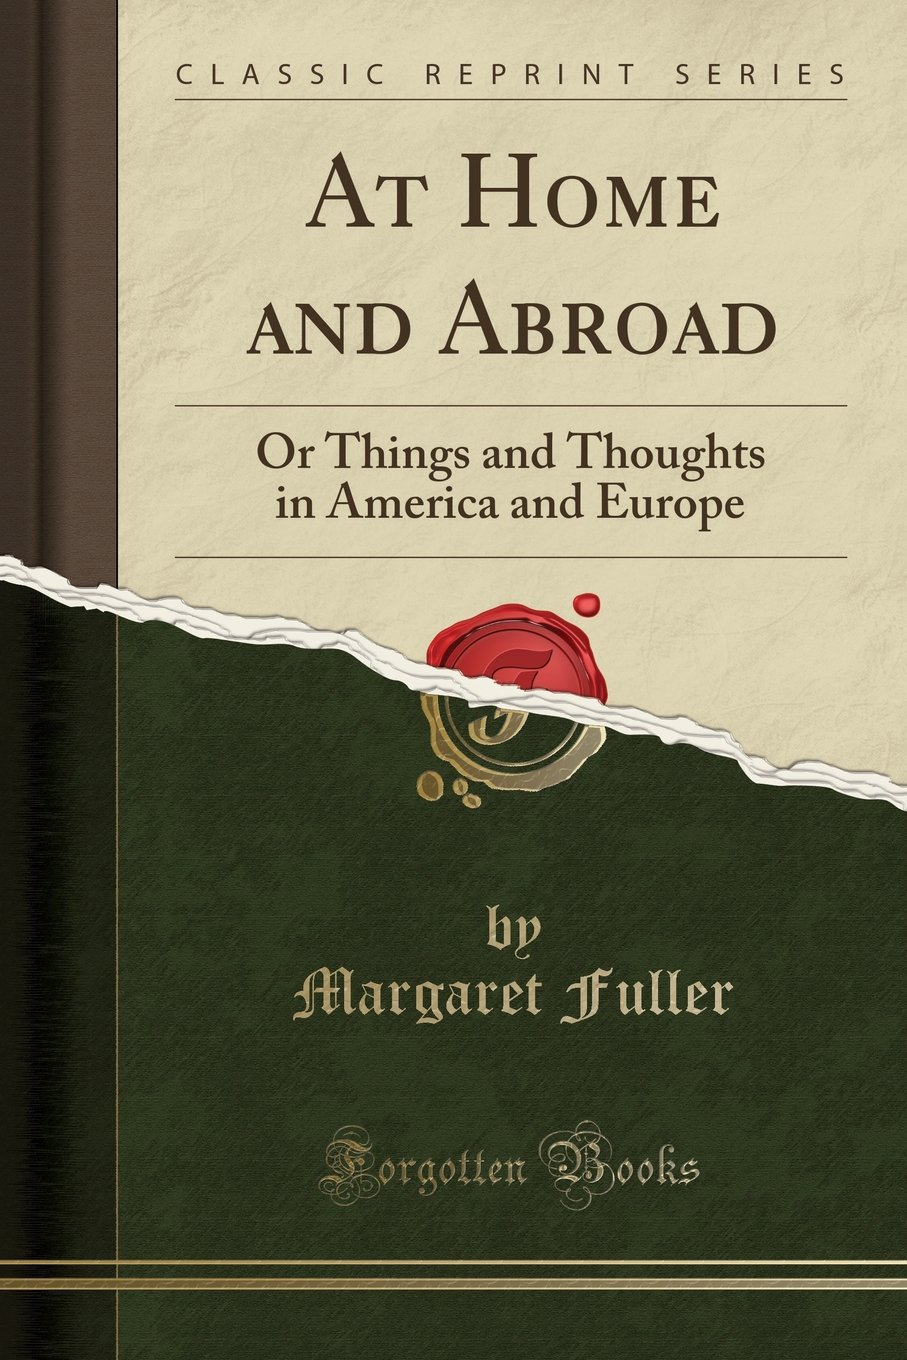 At Home and Abroad: Or Things and Thoughts in America and Europe (Classic Reprint) pdf